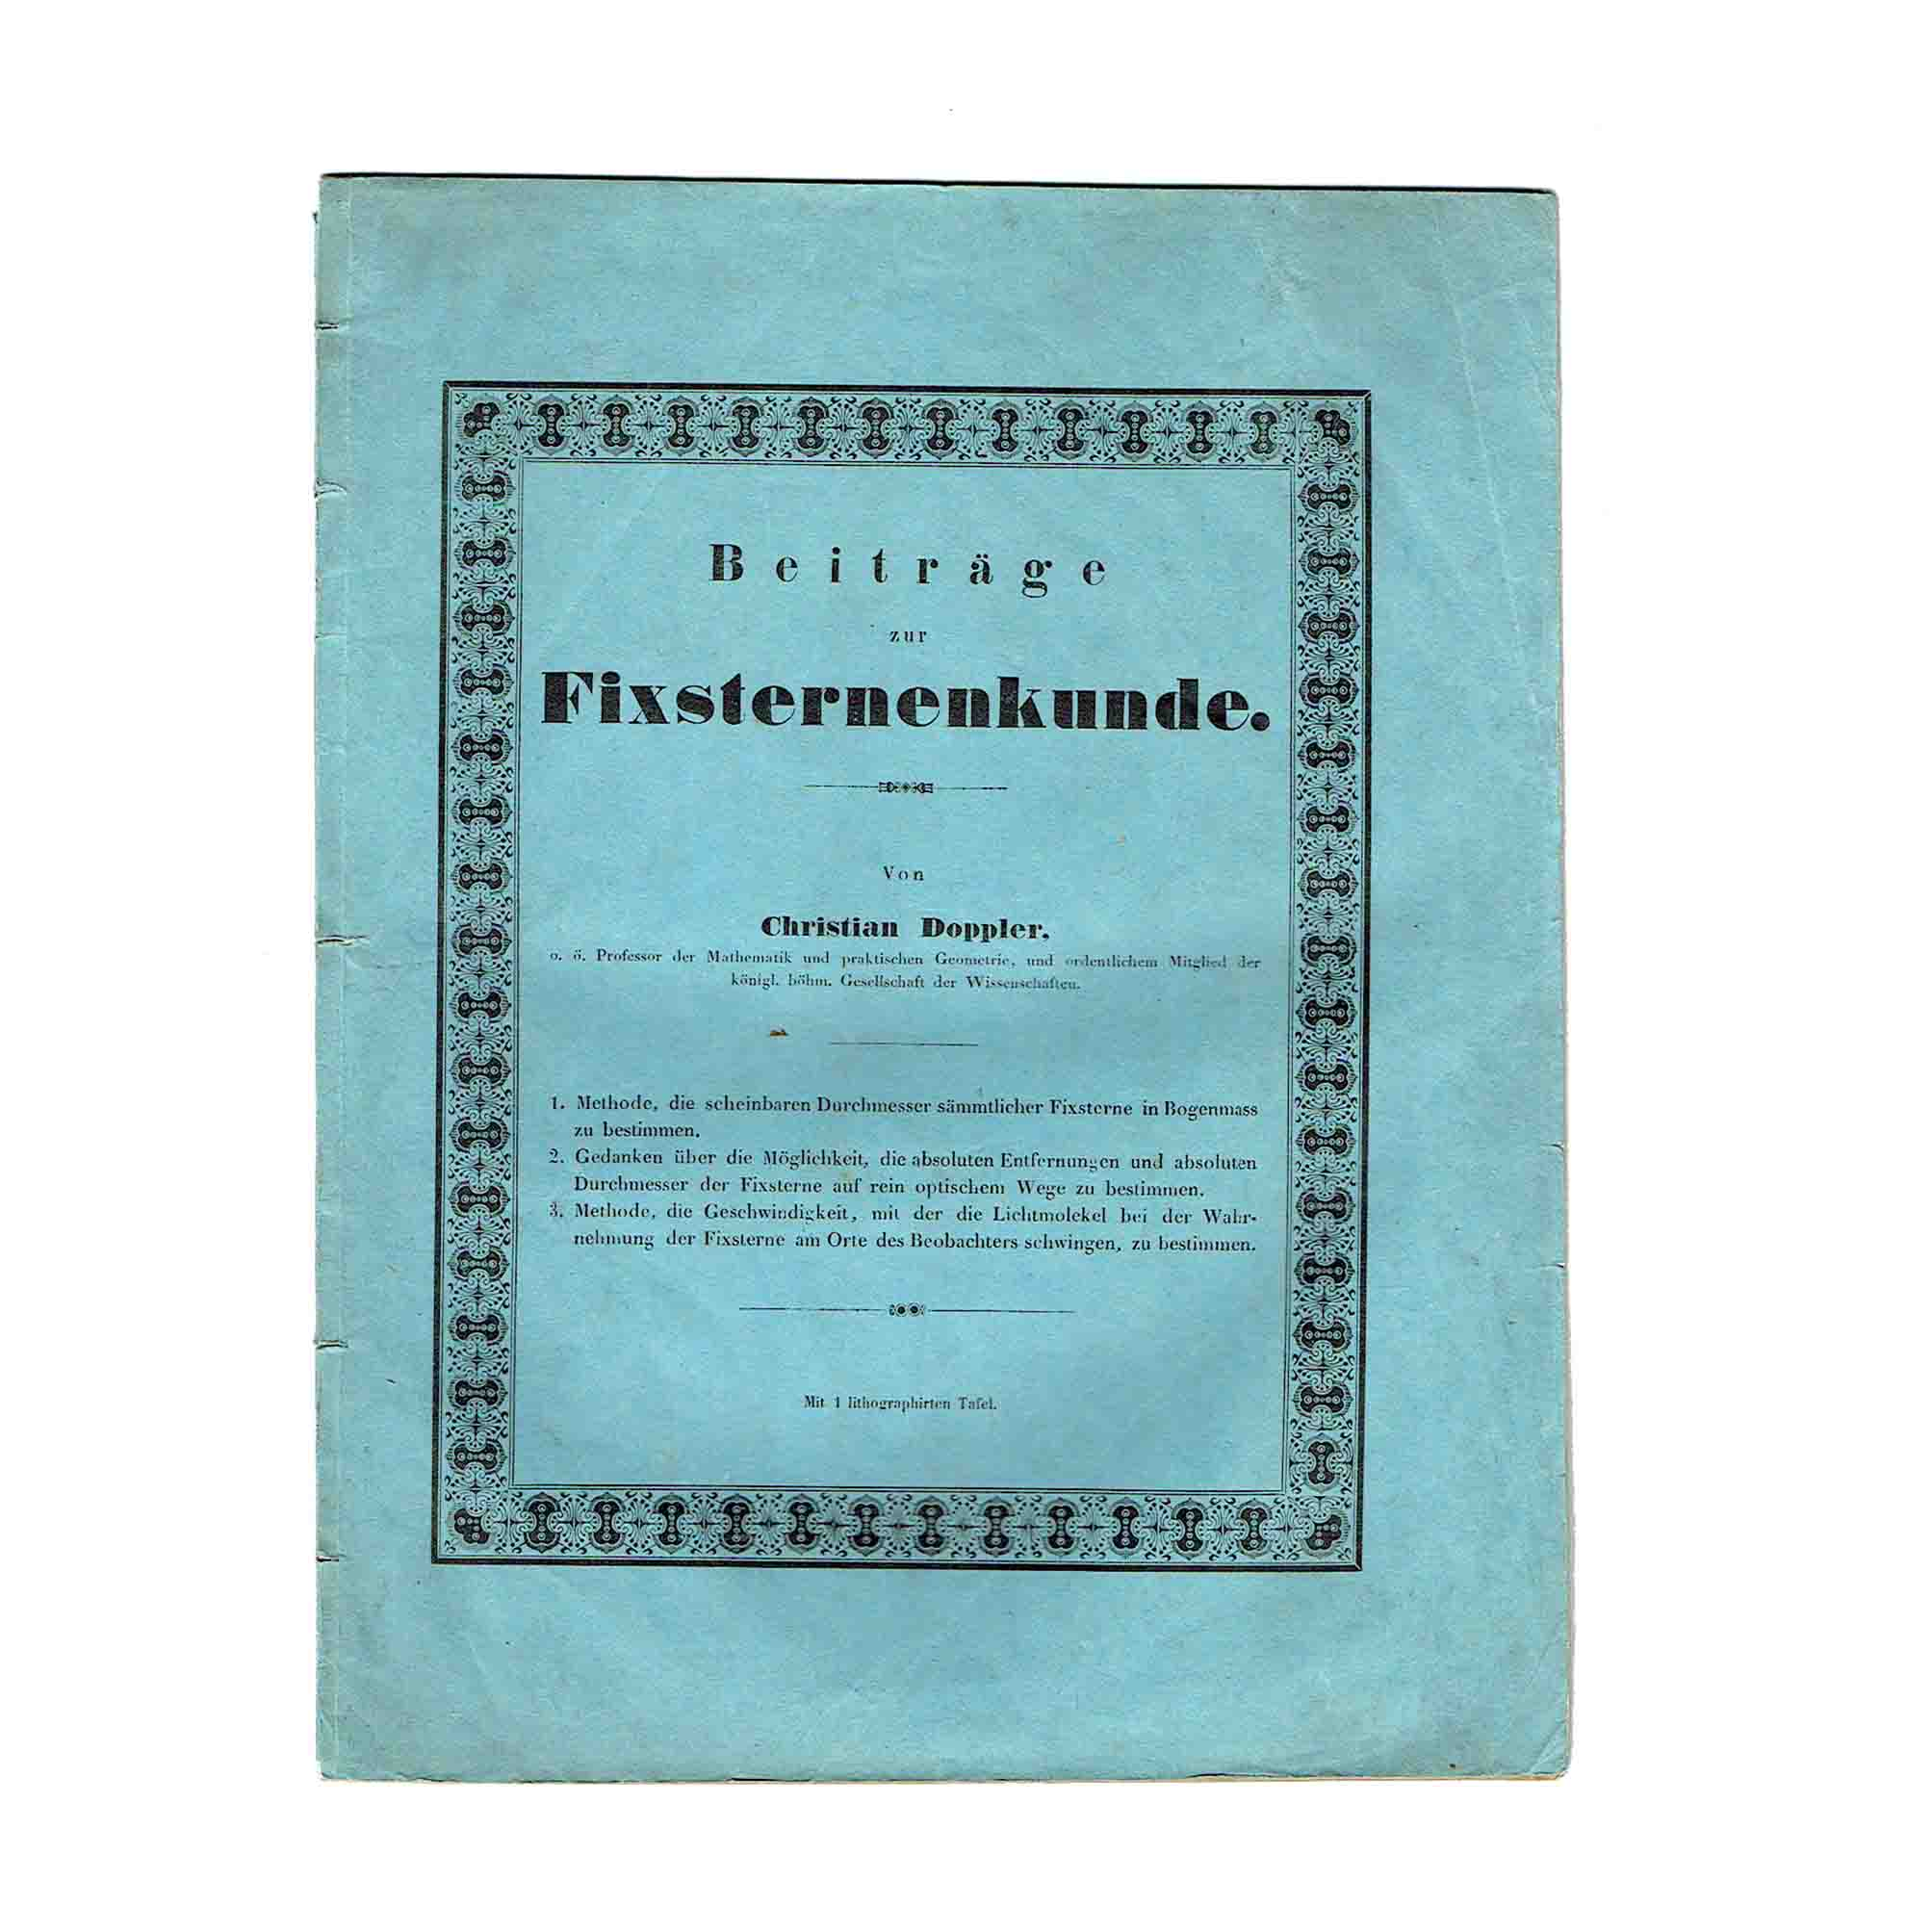 5815K-Doppler-Fixsternenkunde-1846-Cover-recto-A-N.jpeg